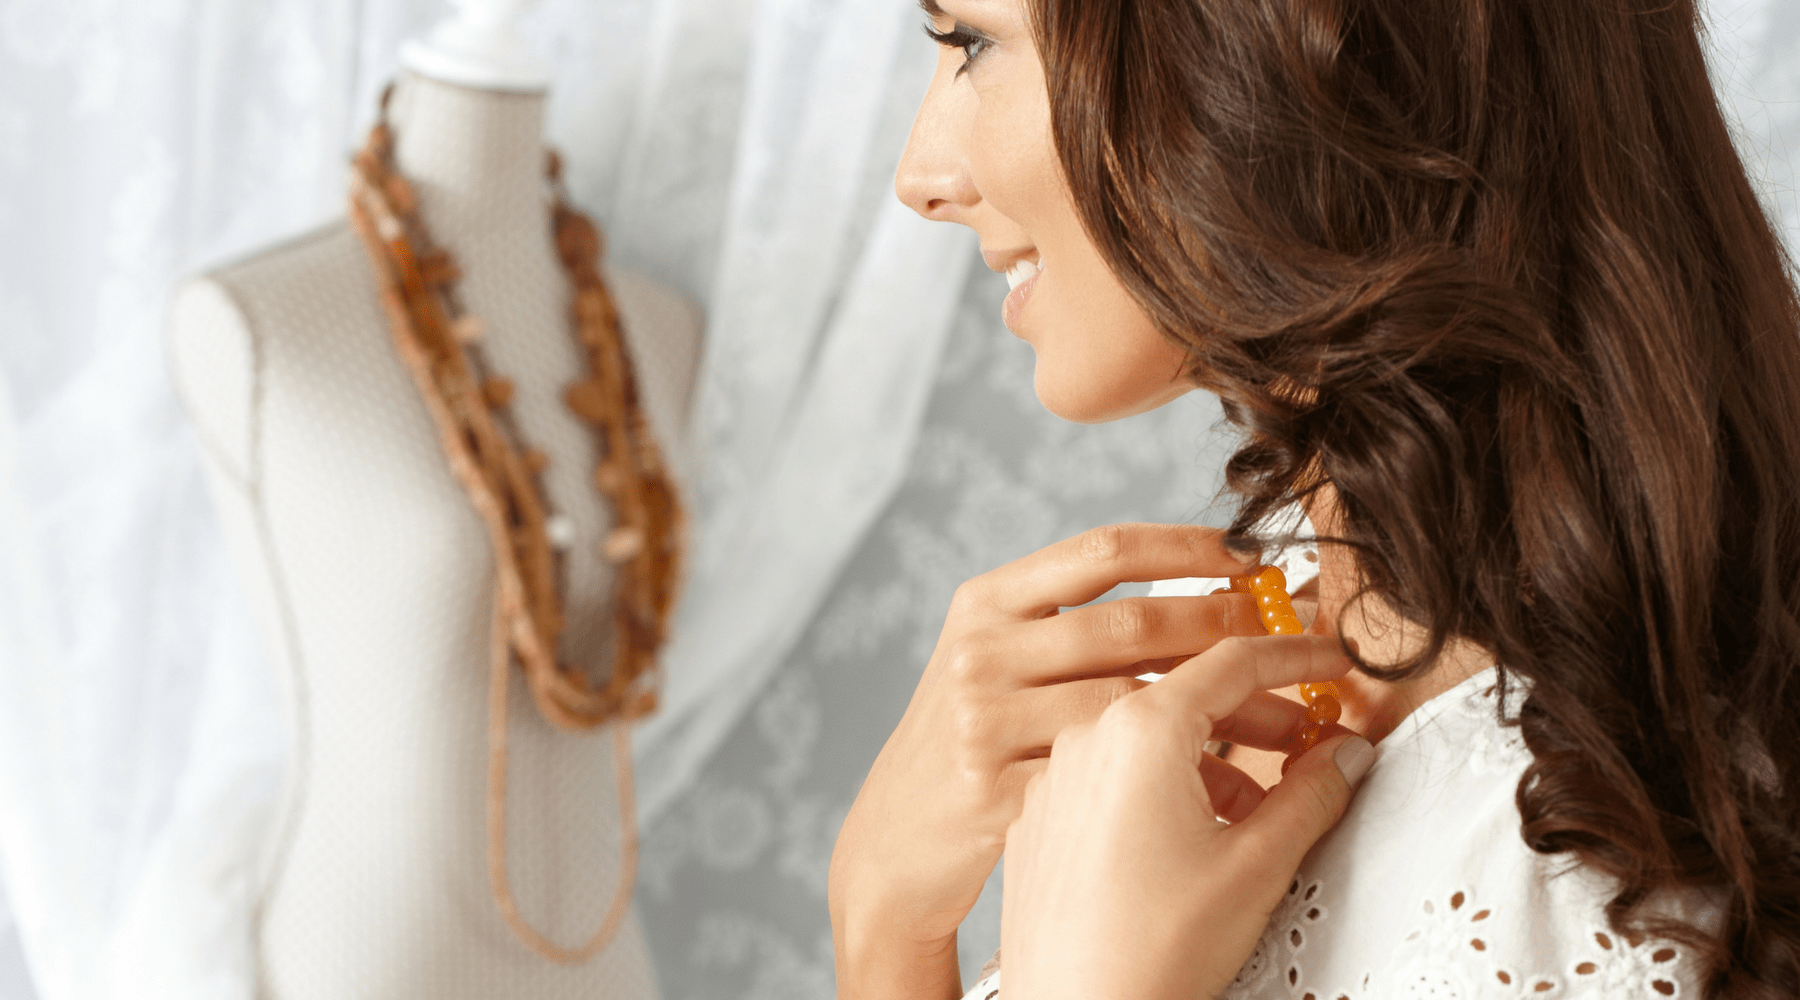 Necklaces for Her: Helpful Tips for Buying Gift Jewelry